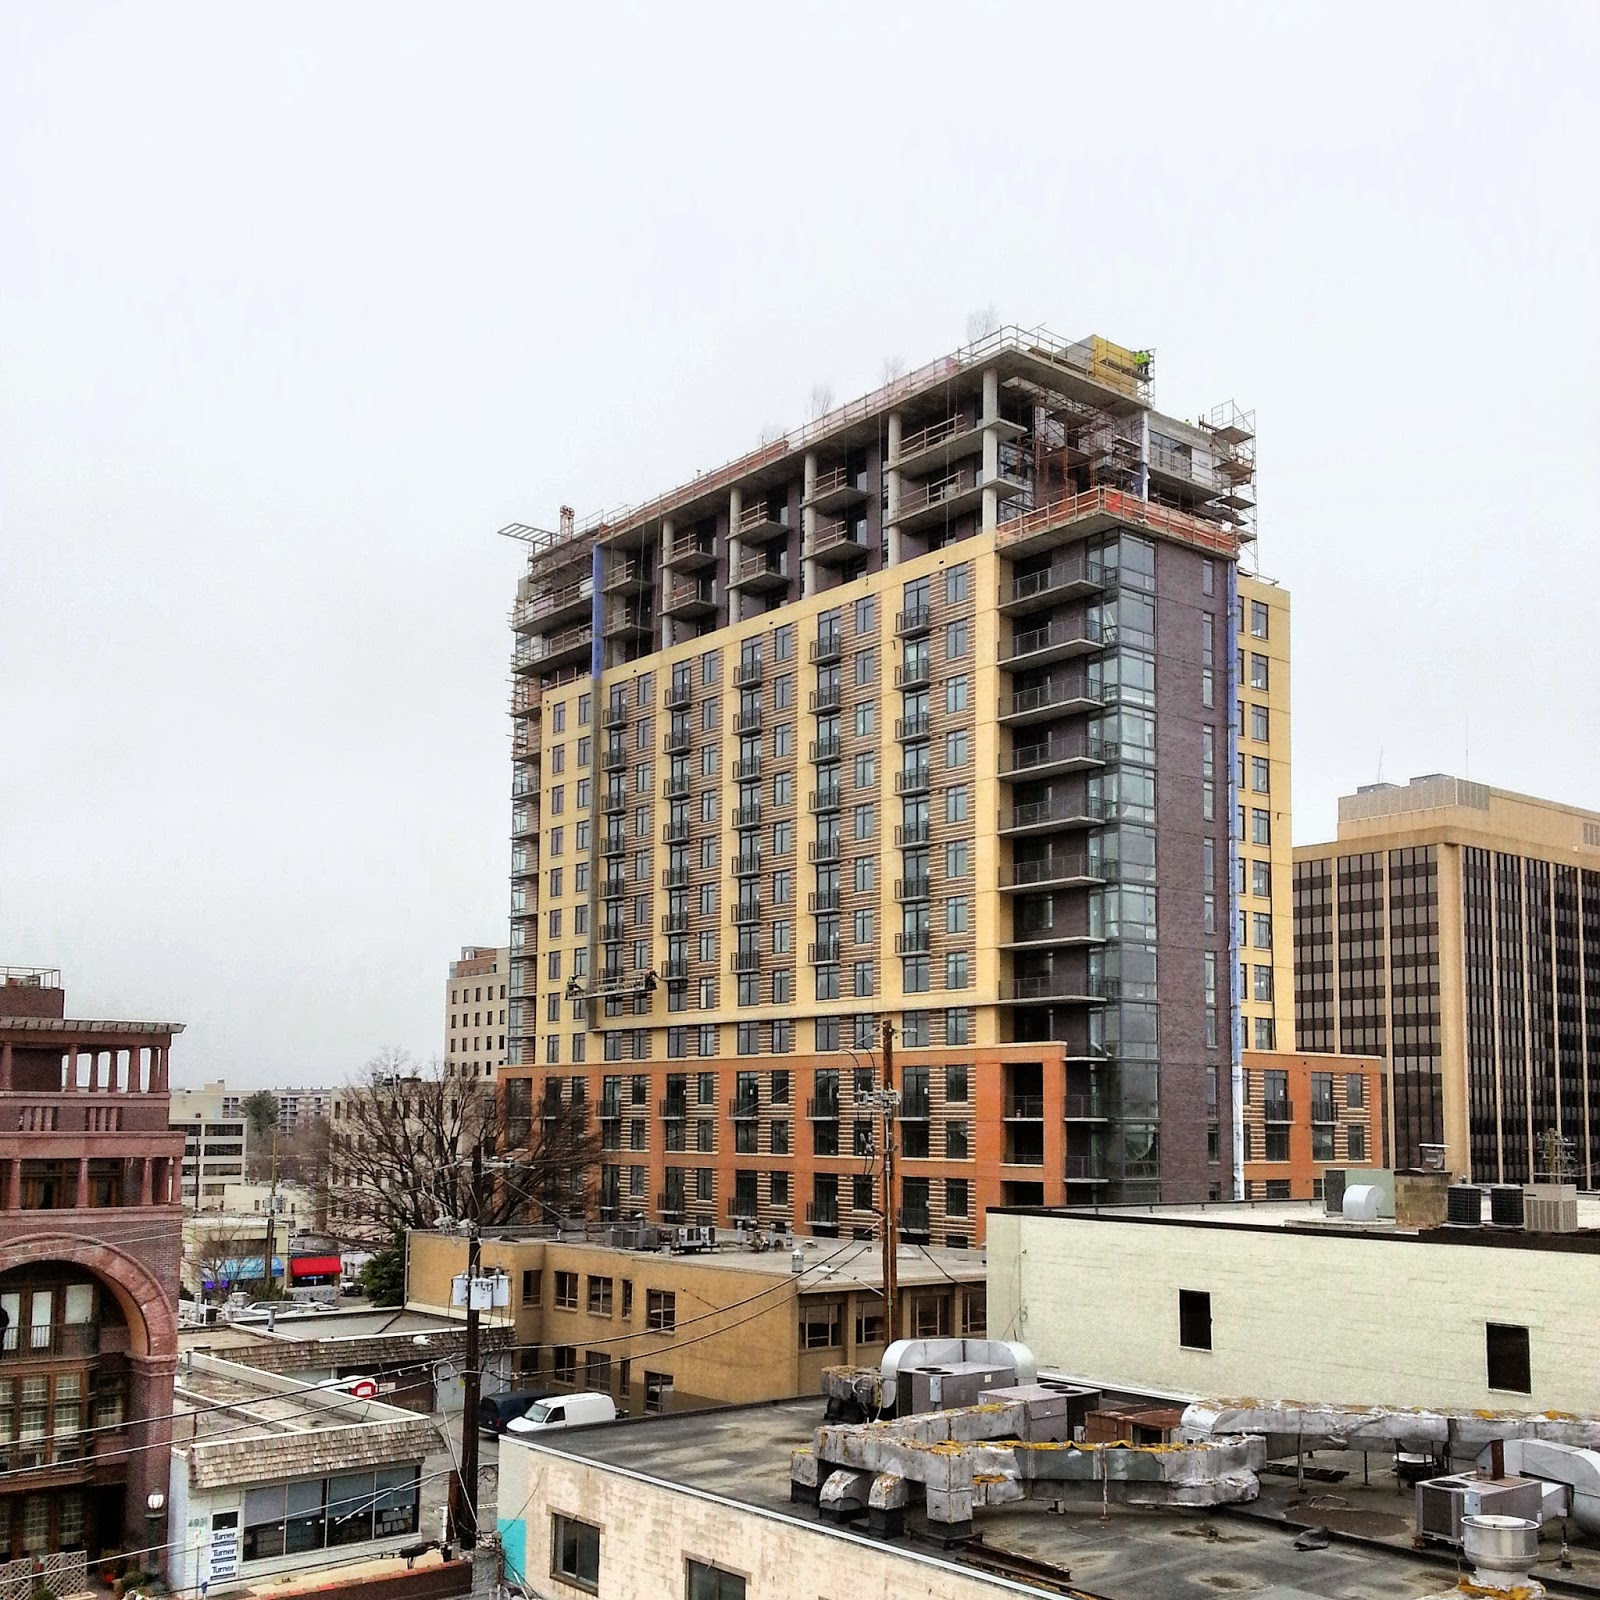 Bainbridge Has Released Several Floorplans For Units In The Future  Bainbridge Bethesda Luxury Apartment Tower, In The Final Stages Of  Construction At 4918 ...